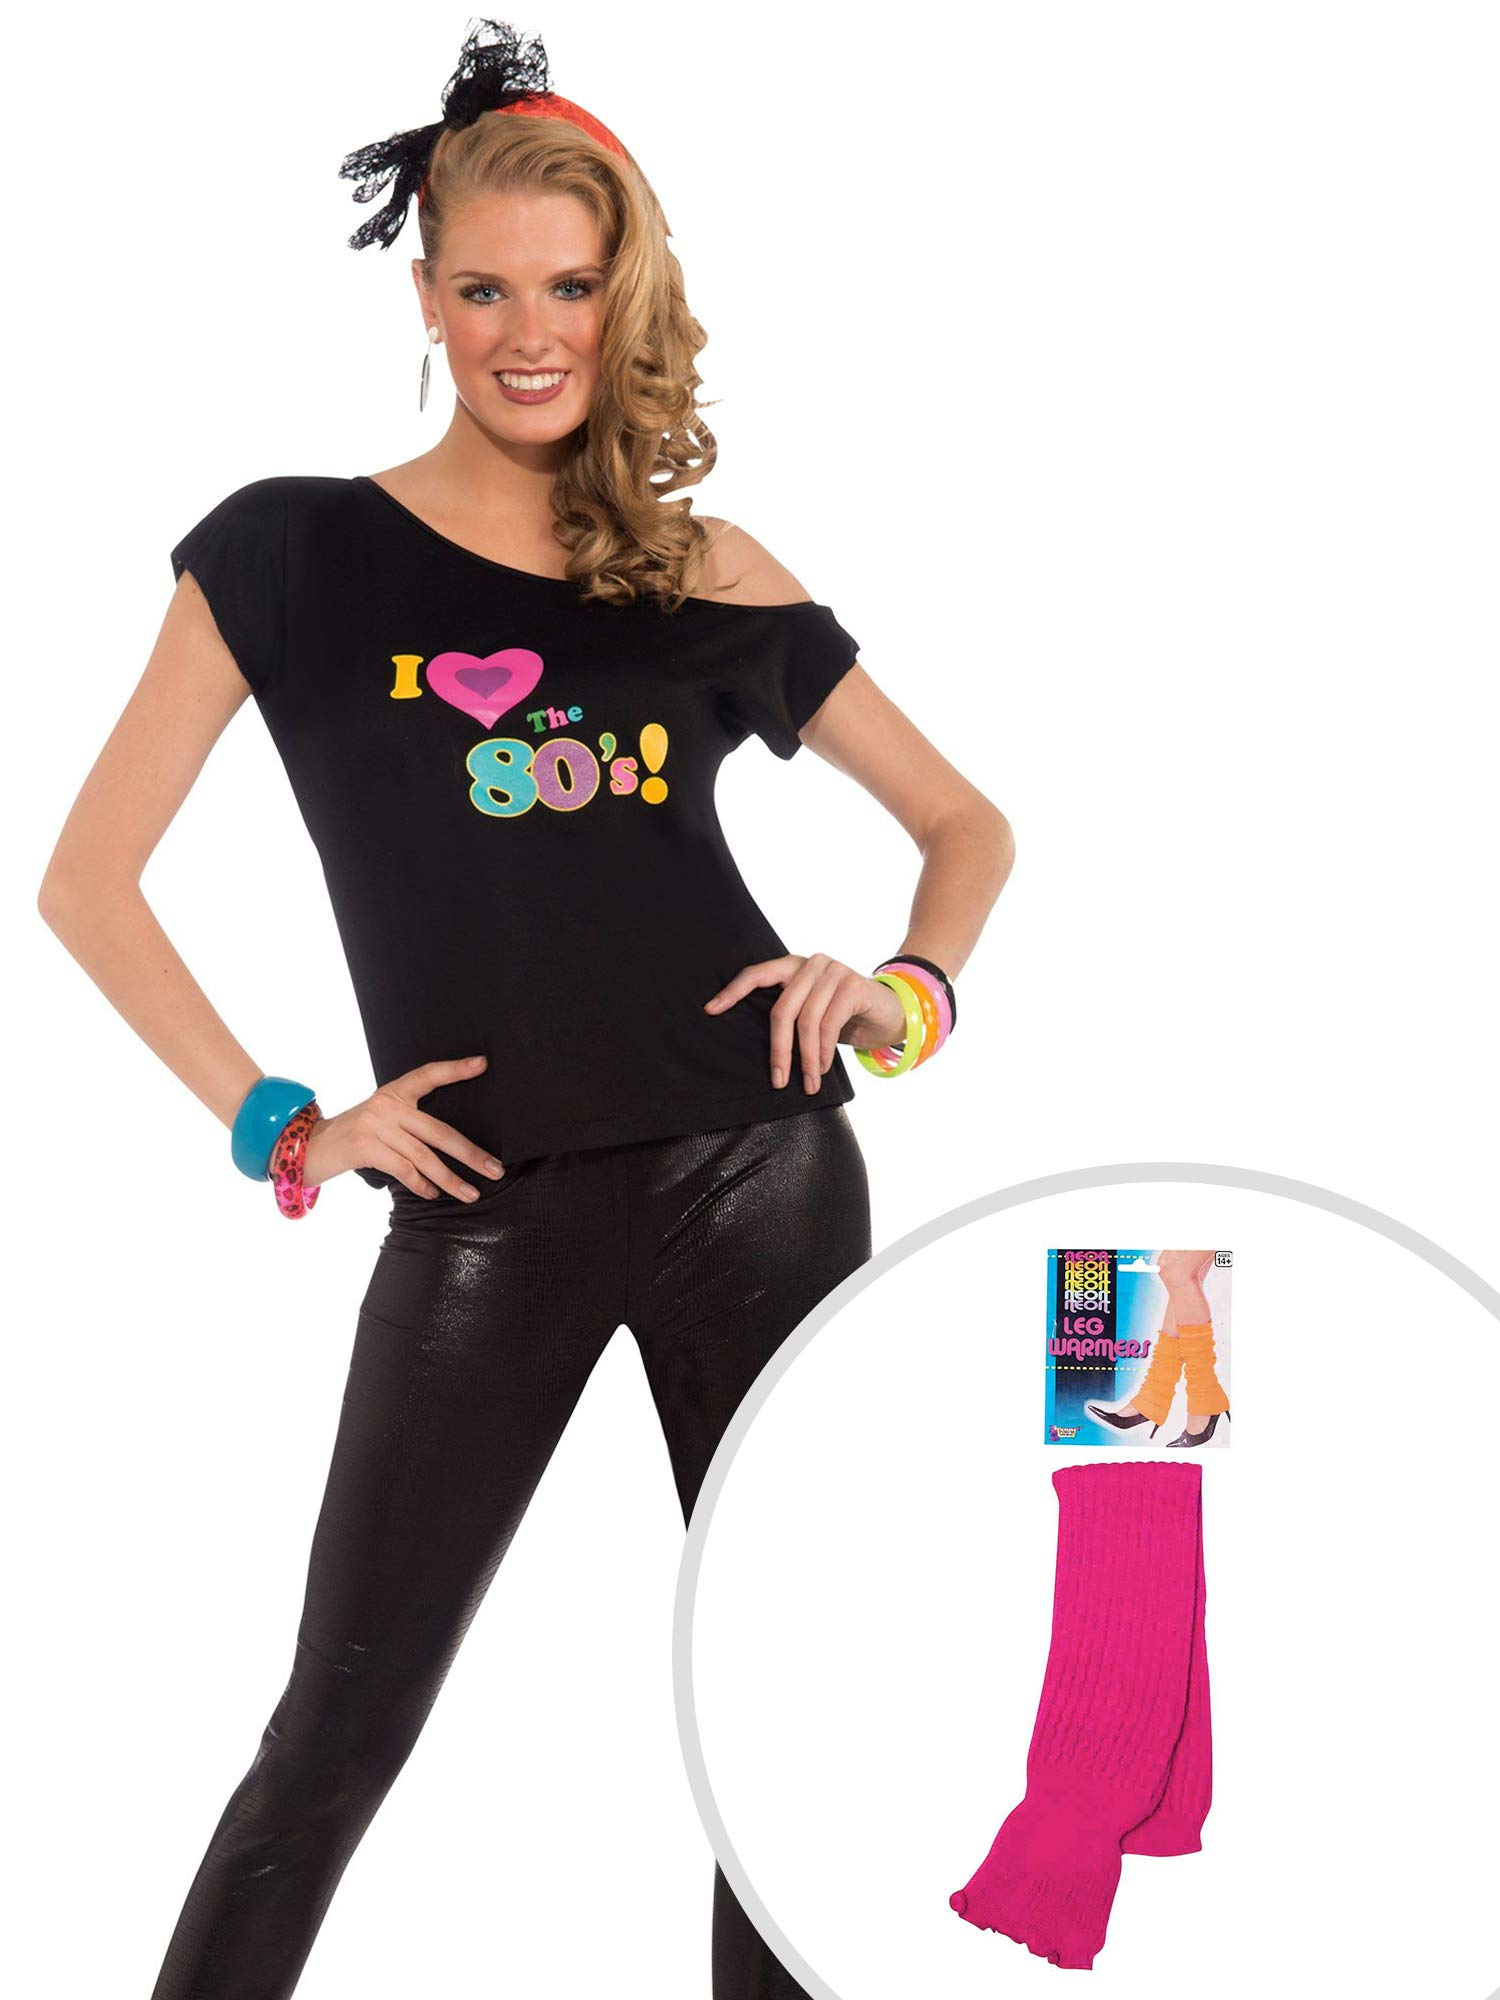 Womens I Love The 80s Shirt Adult Costume Kit M/L with Neon Pink Leg Warmers